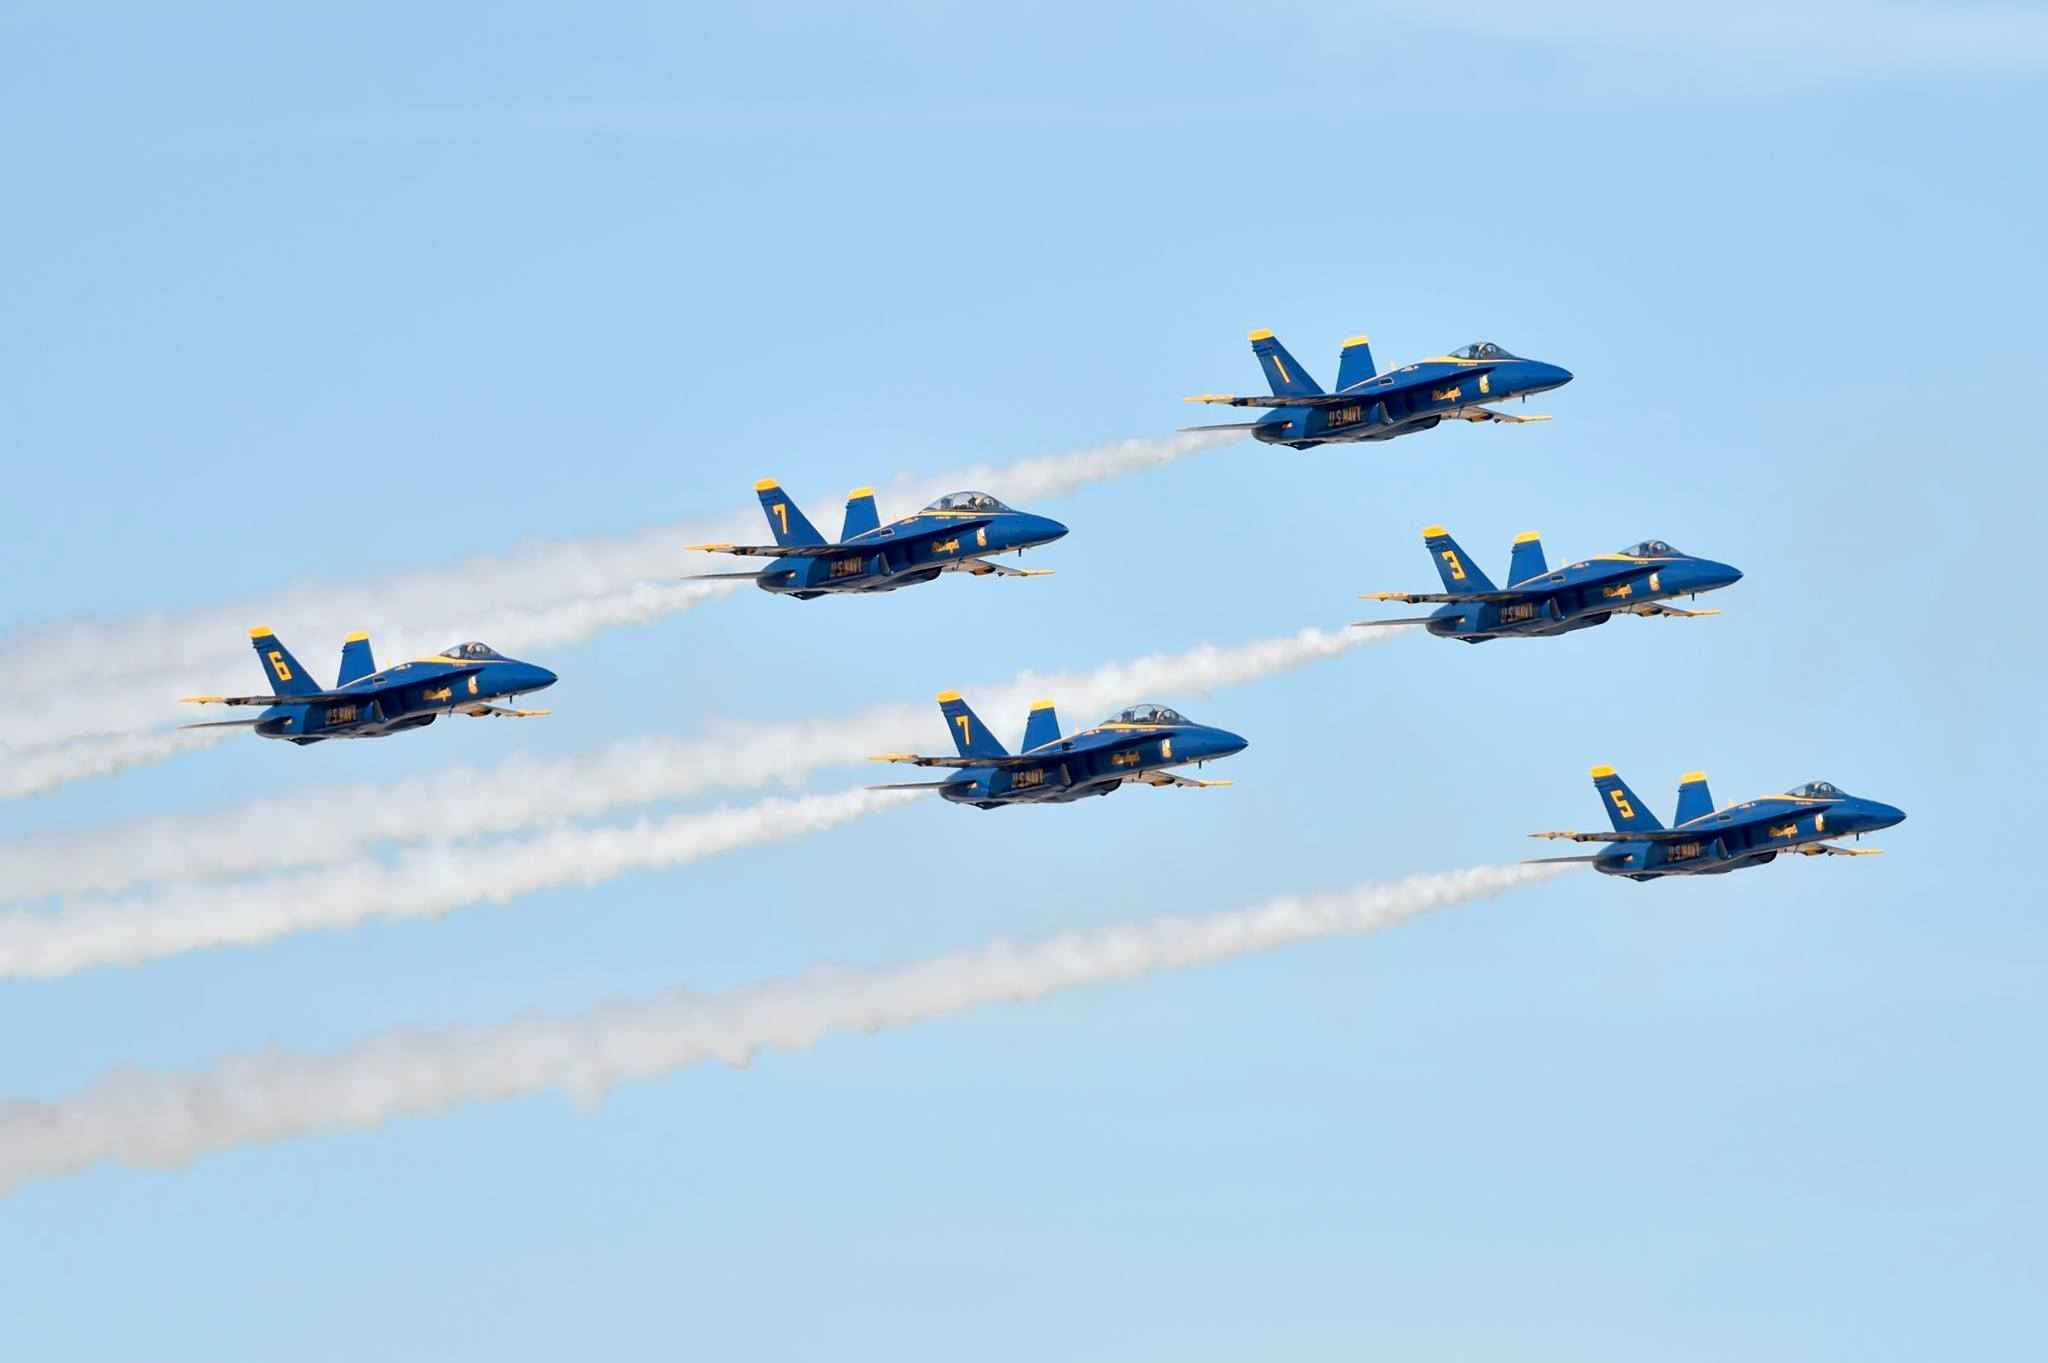 Blue Angels Delta formation. Photo US NAVY